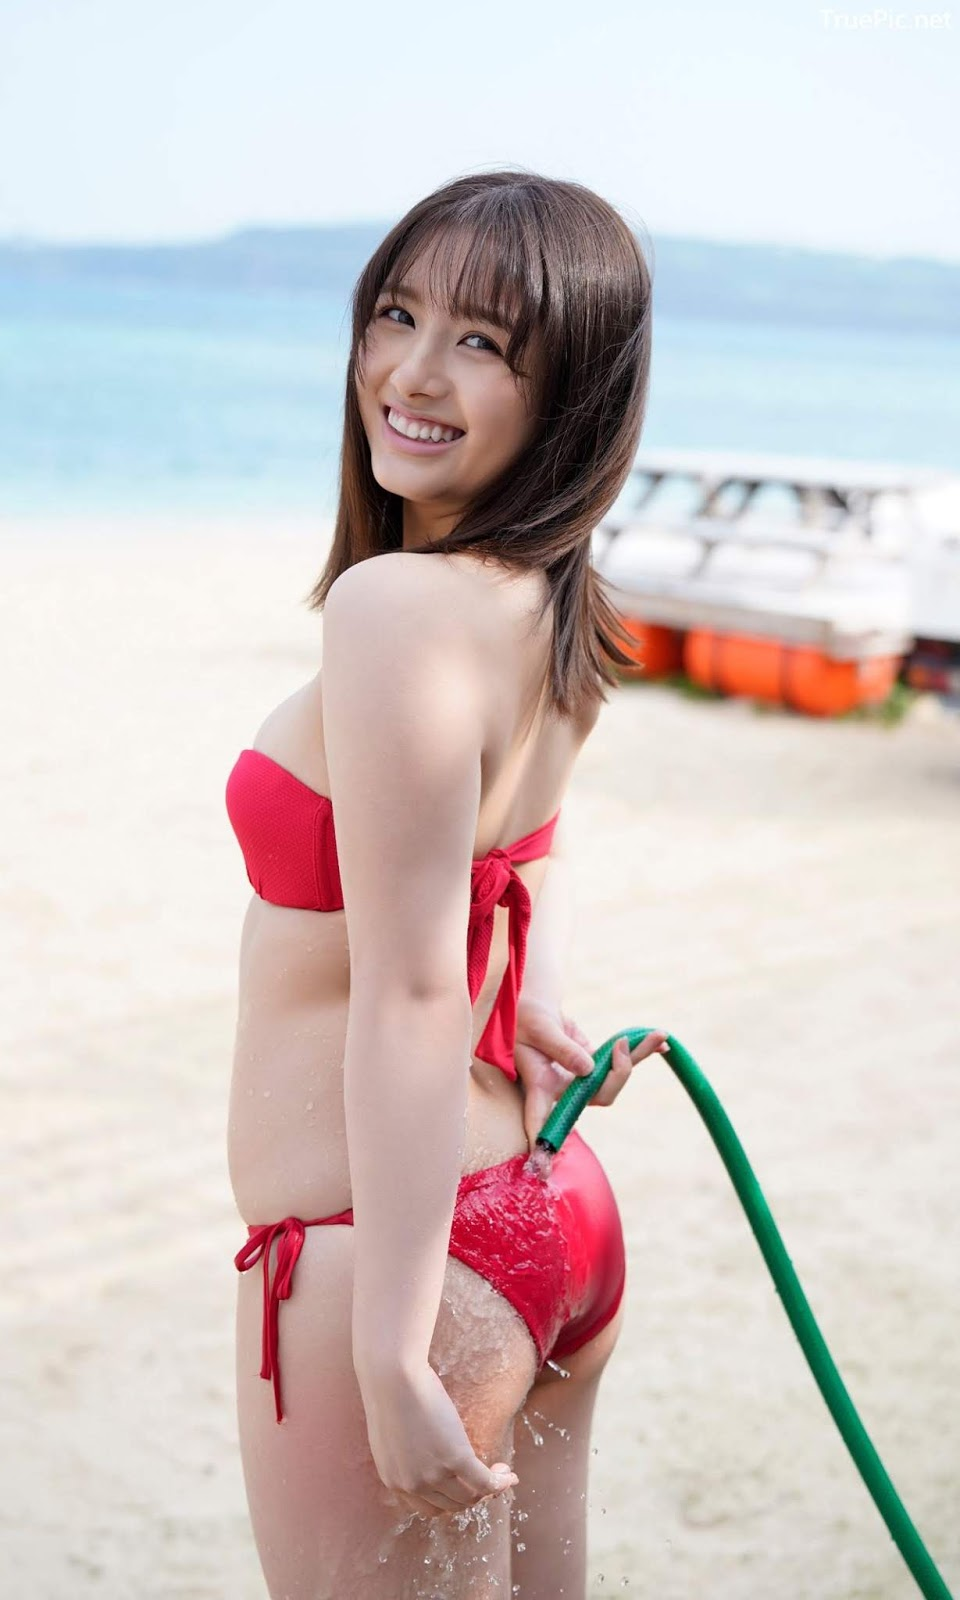 Image Japanese Idol Girl Group AKB48 - Nana Owada - The Other Side of That Door - TruePic.net - Picture-7